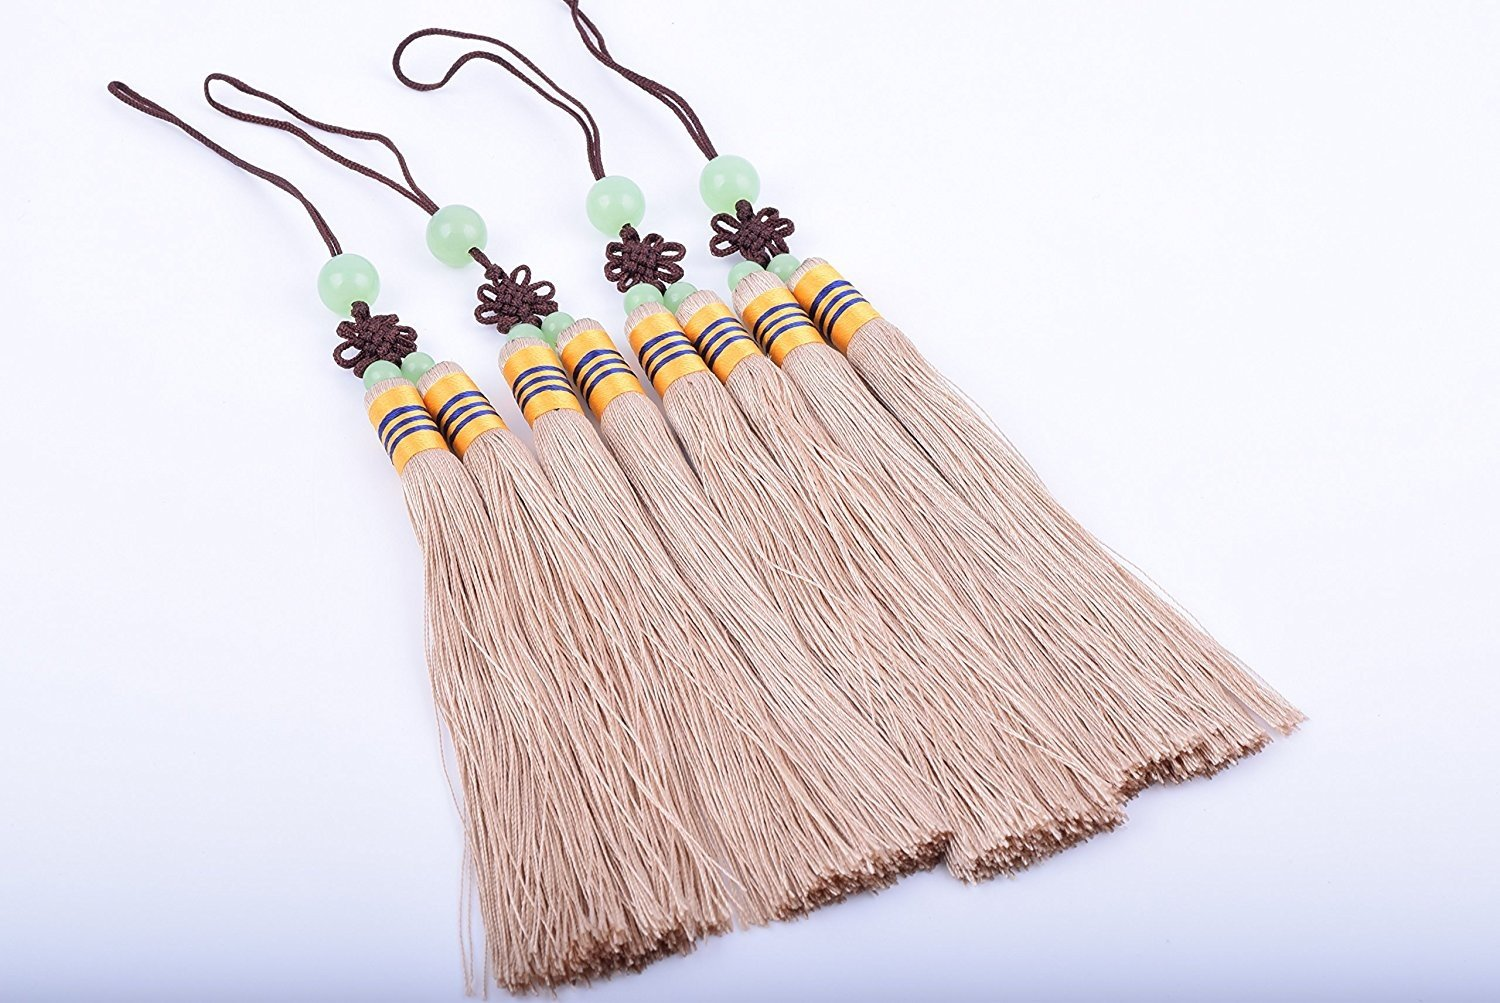 Large KONMAY 5pcs Soft Khaki Handmade Silky Craft Two Strands Tassels With Jade Beads and Chinese Knots